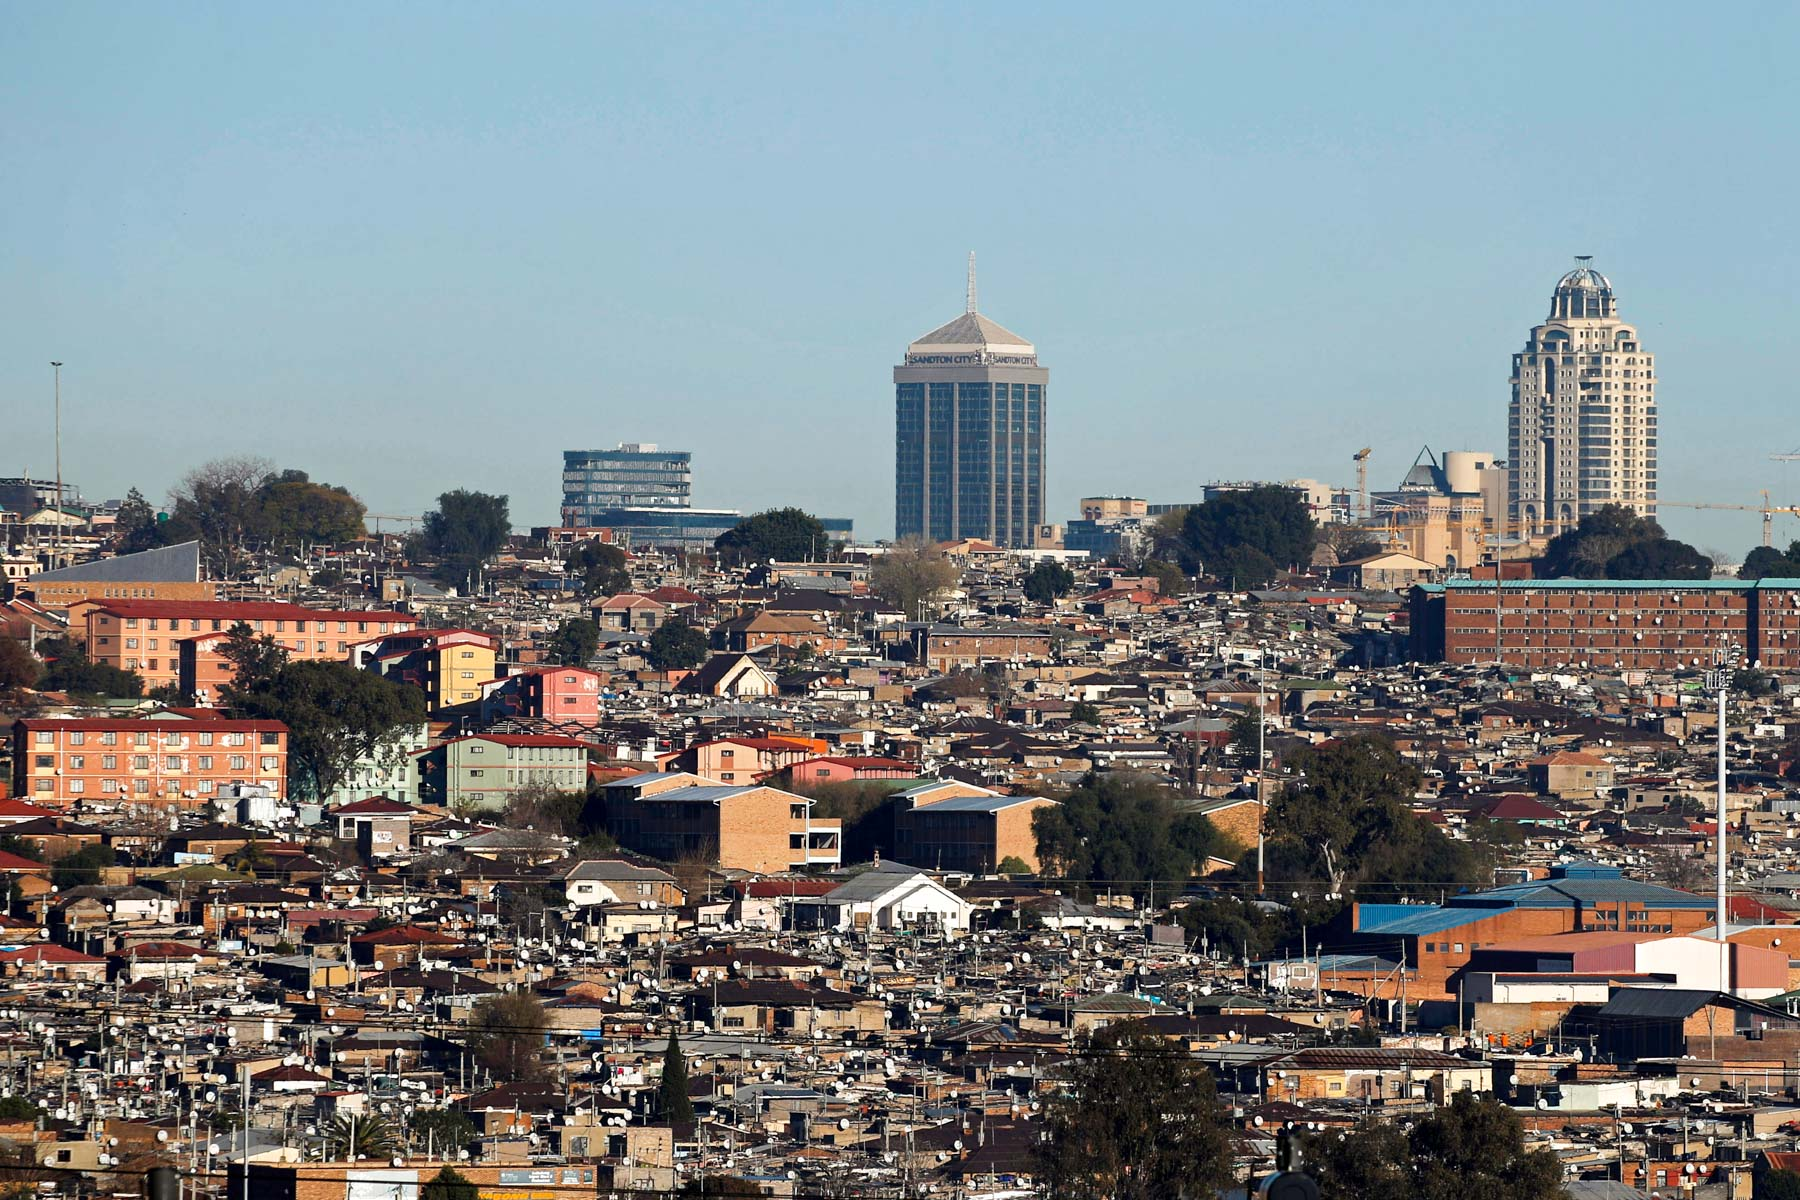 28 July 2016: Alexandra township in Johannesburg, where thousands of South Africans who lack the financial means to buy a house live in shacks. (Photograph by Reuters/ Siphiwe Sibeko)